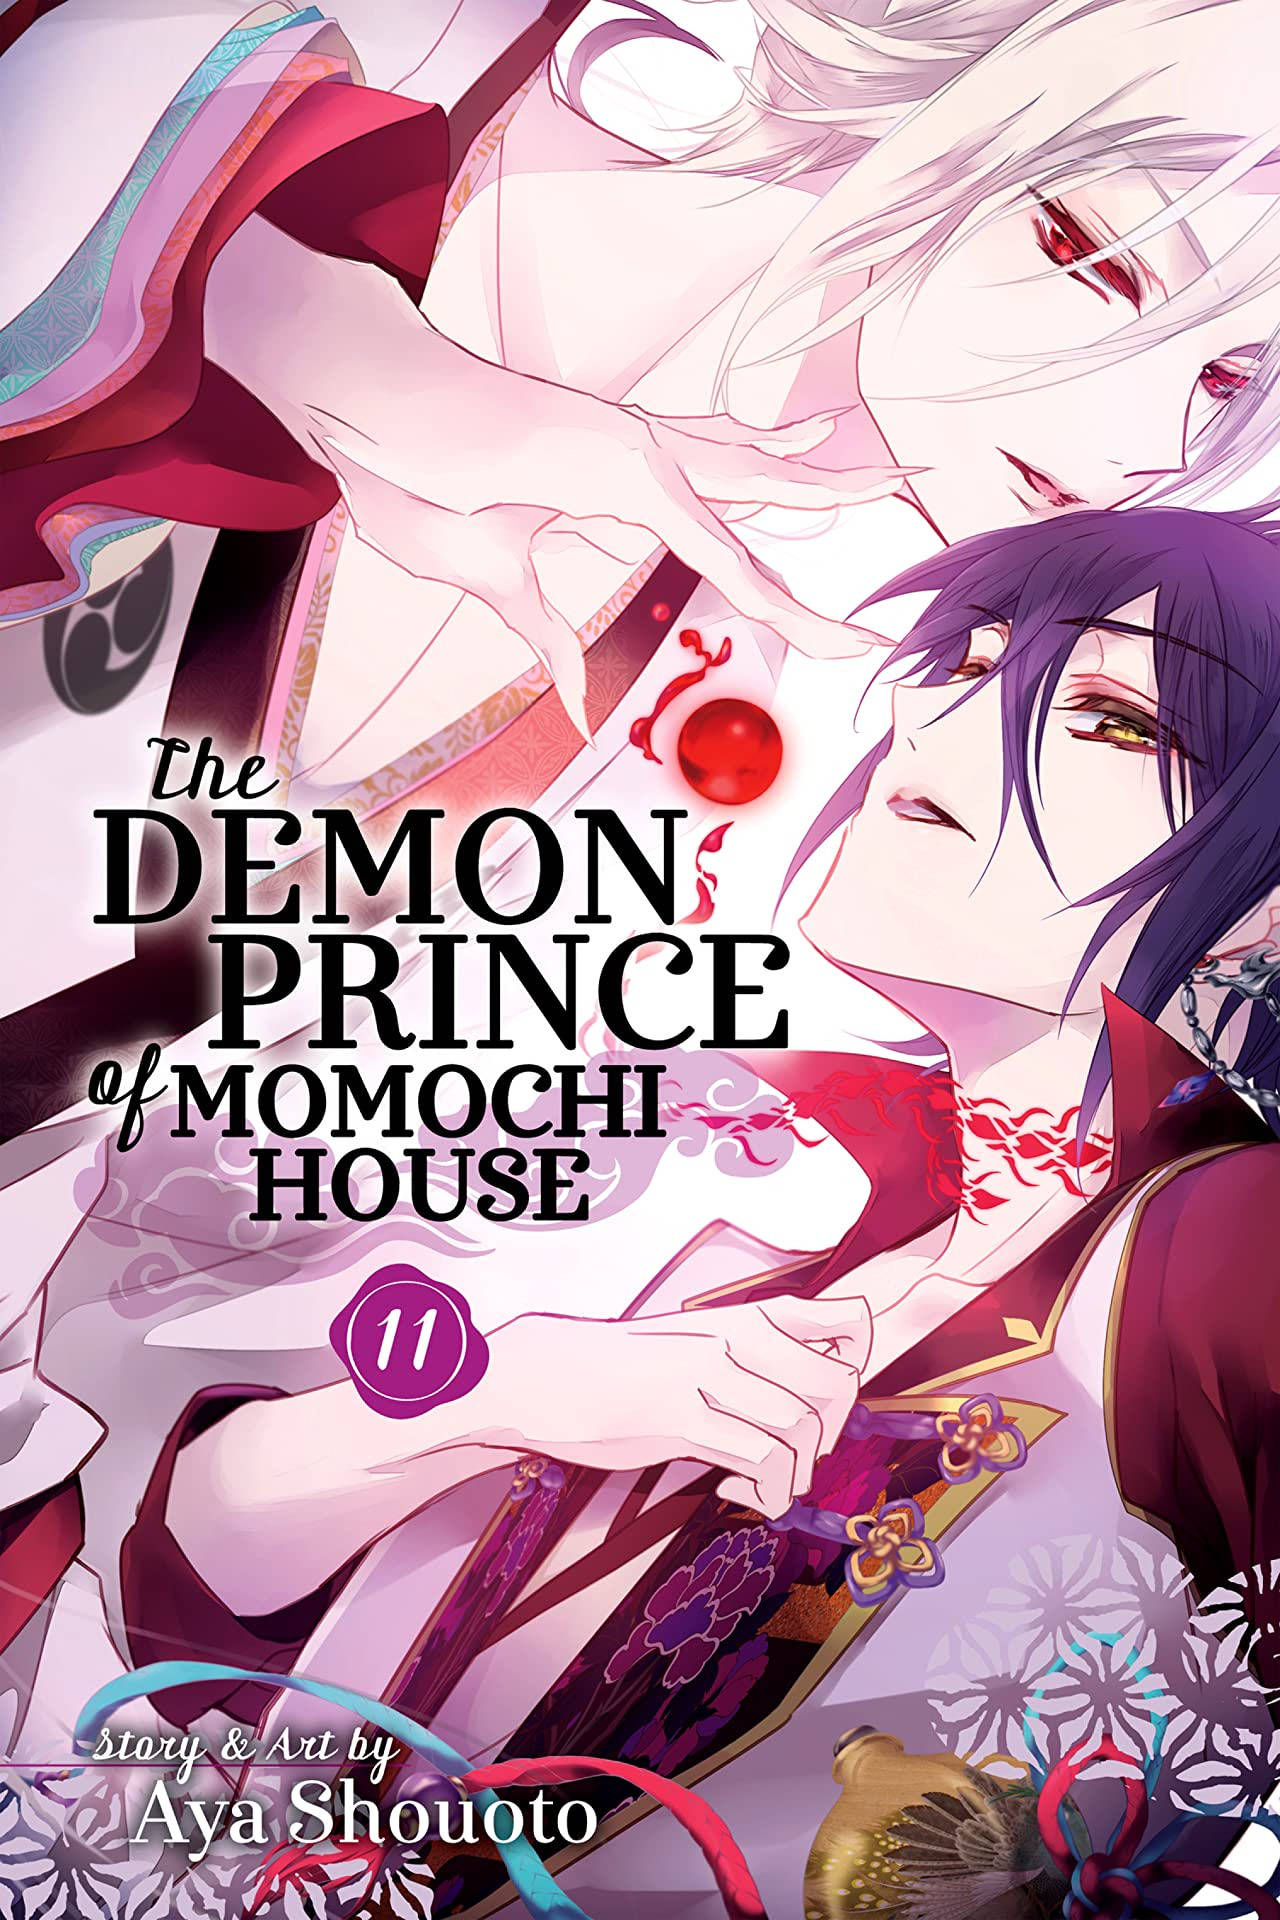 The Demon Prince of Momochi House Vol. 11